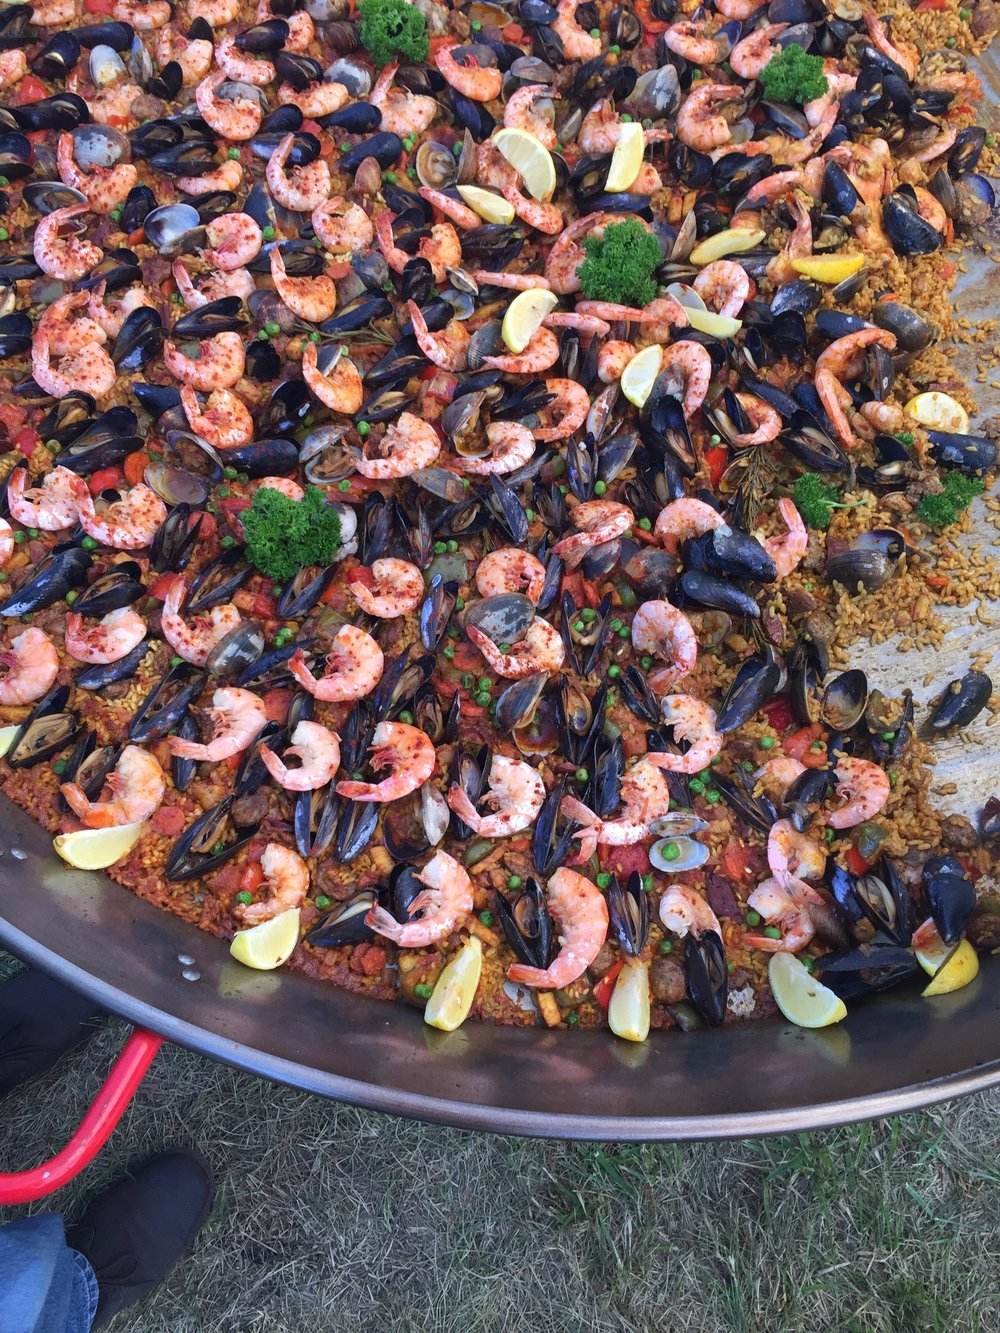 Paella House serves up seafood, meat and vegetarian paella at the PT Farmers Market on Saturdays.